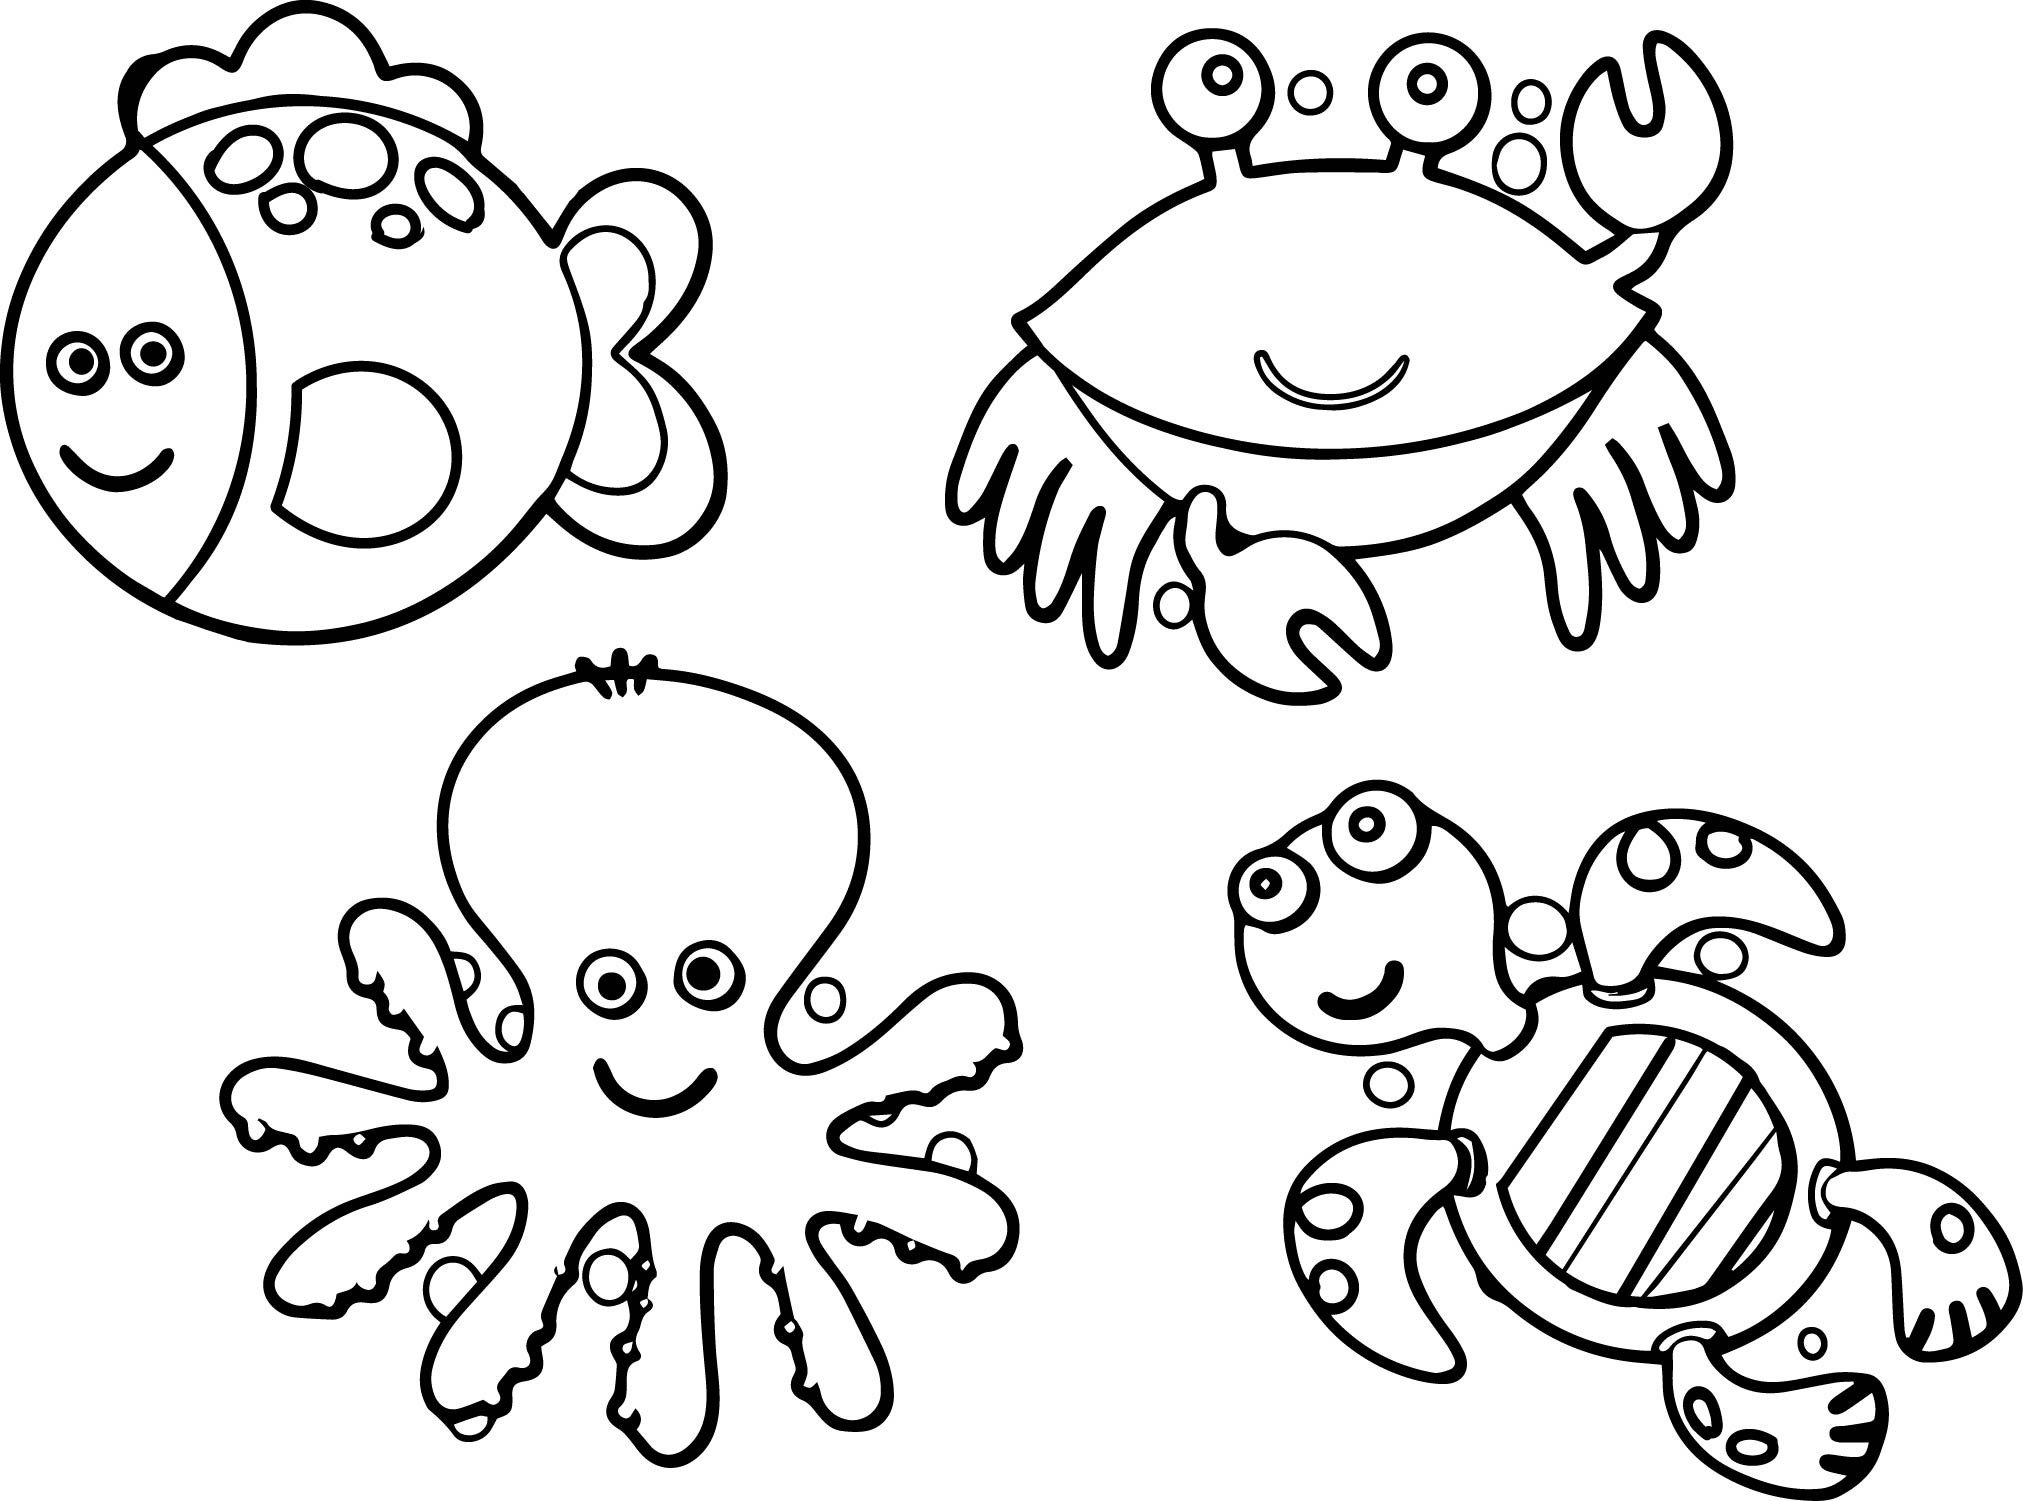 animal color page - sea life animals coloring page